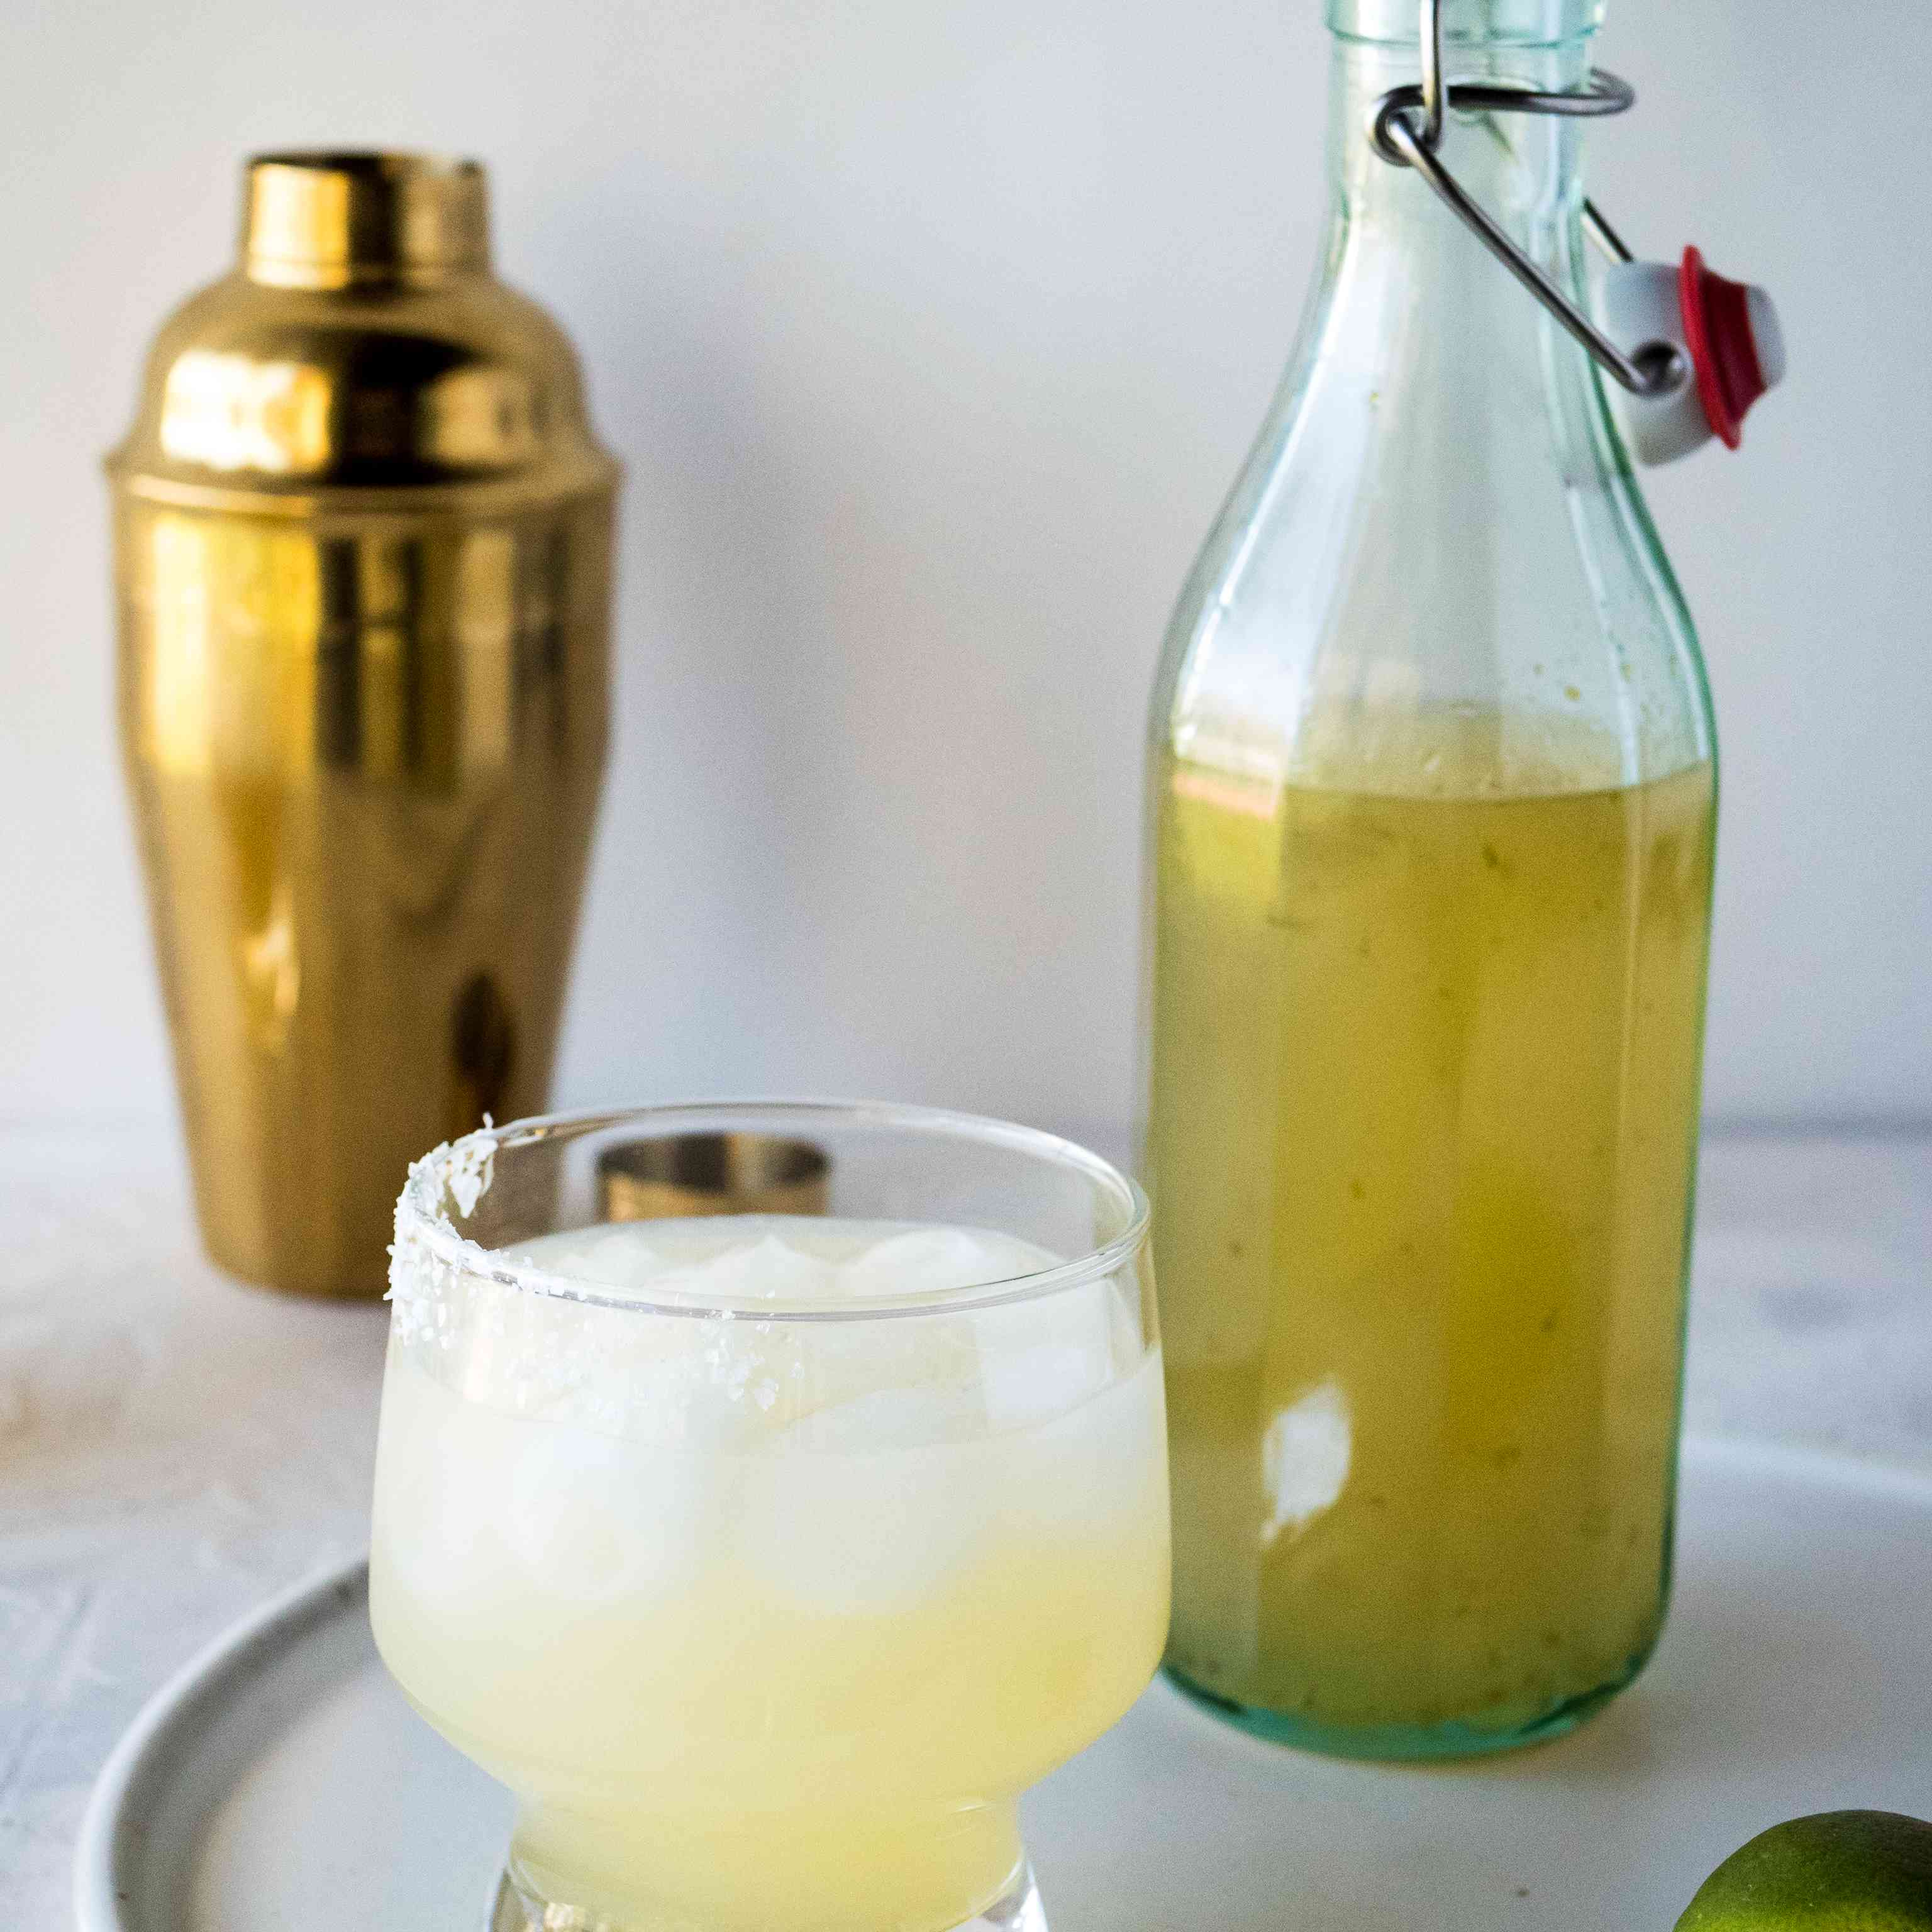 A margarita in a glass with homemade margarita mix.